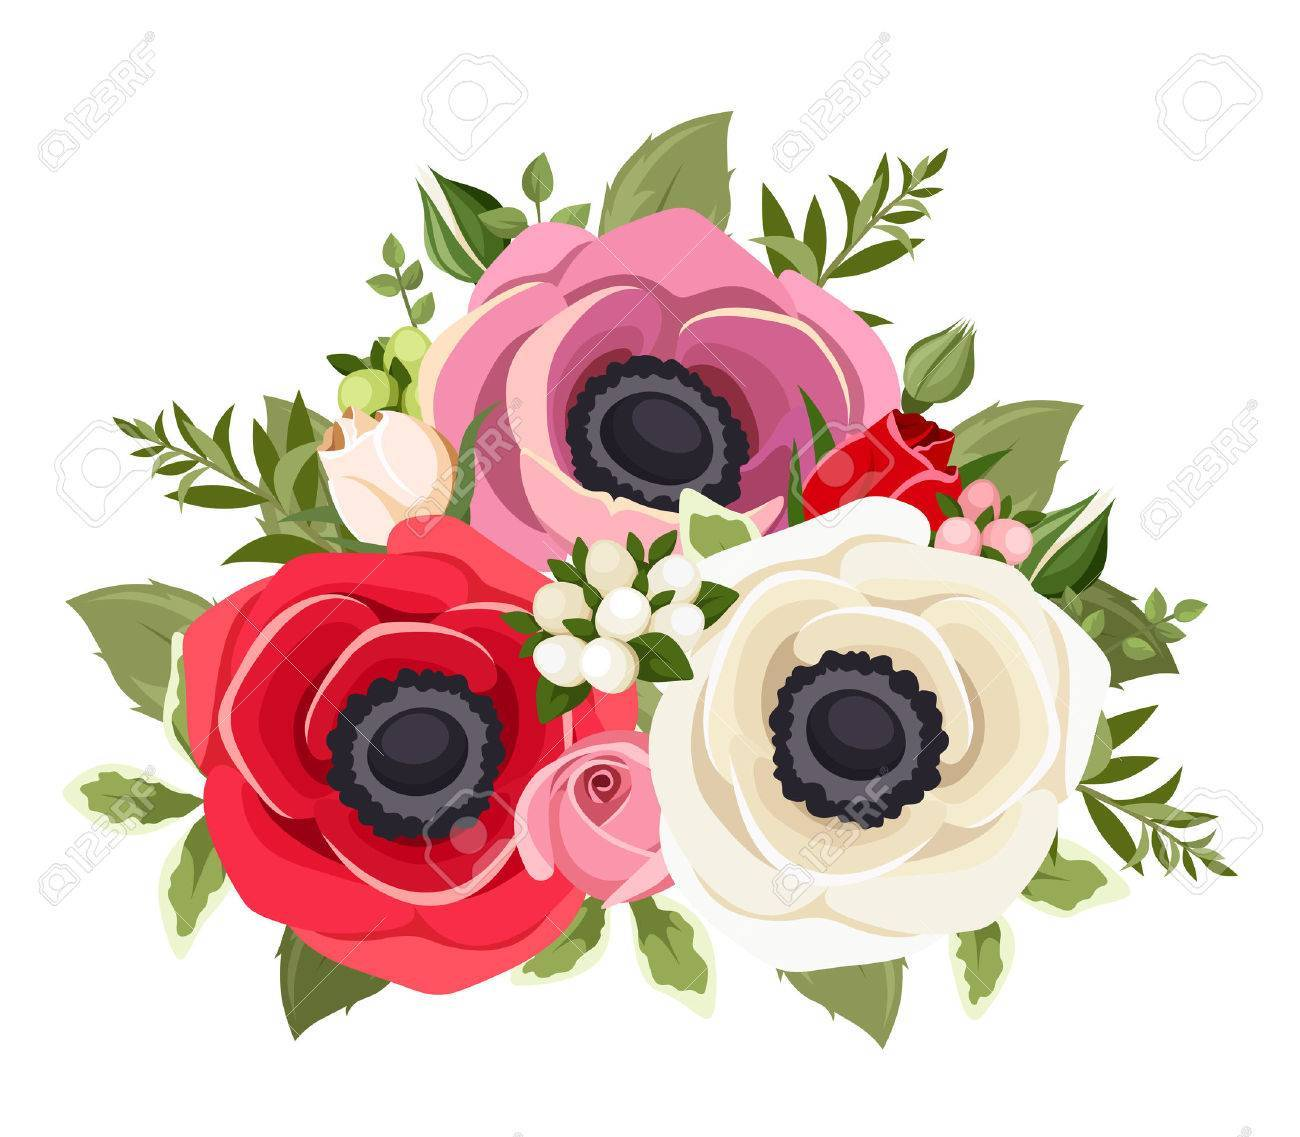 Anemone and rose clipart jpg black and white library Anemone flower clipart 7 » Clipart Portal jpg black and white library